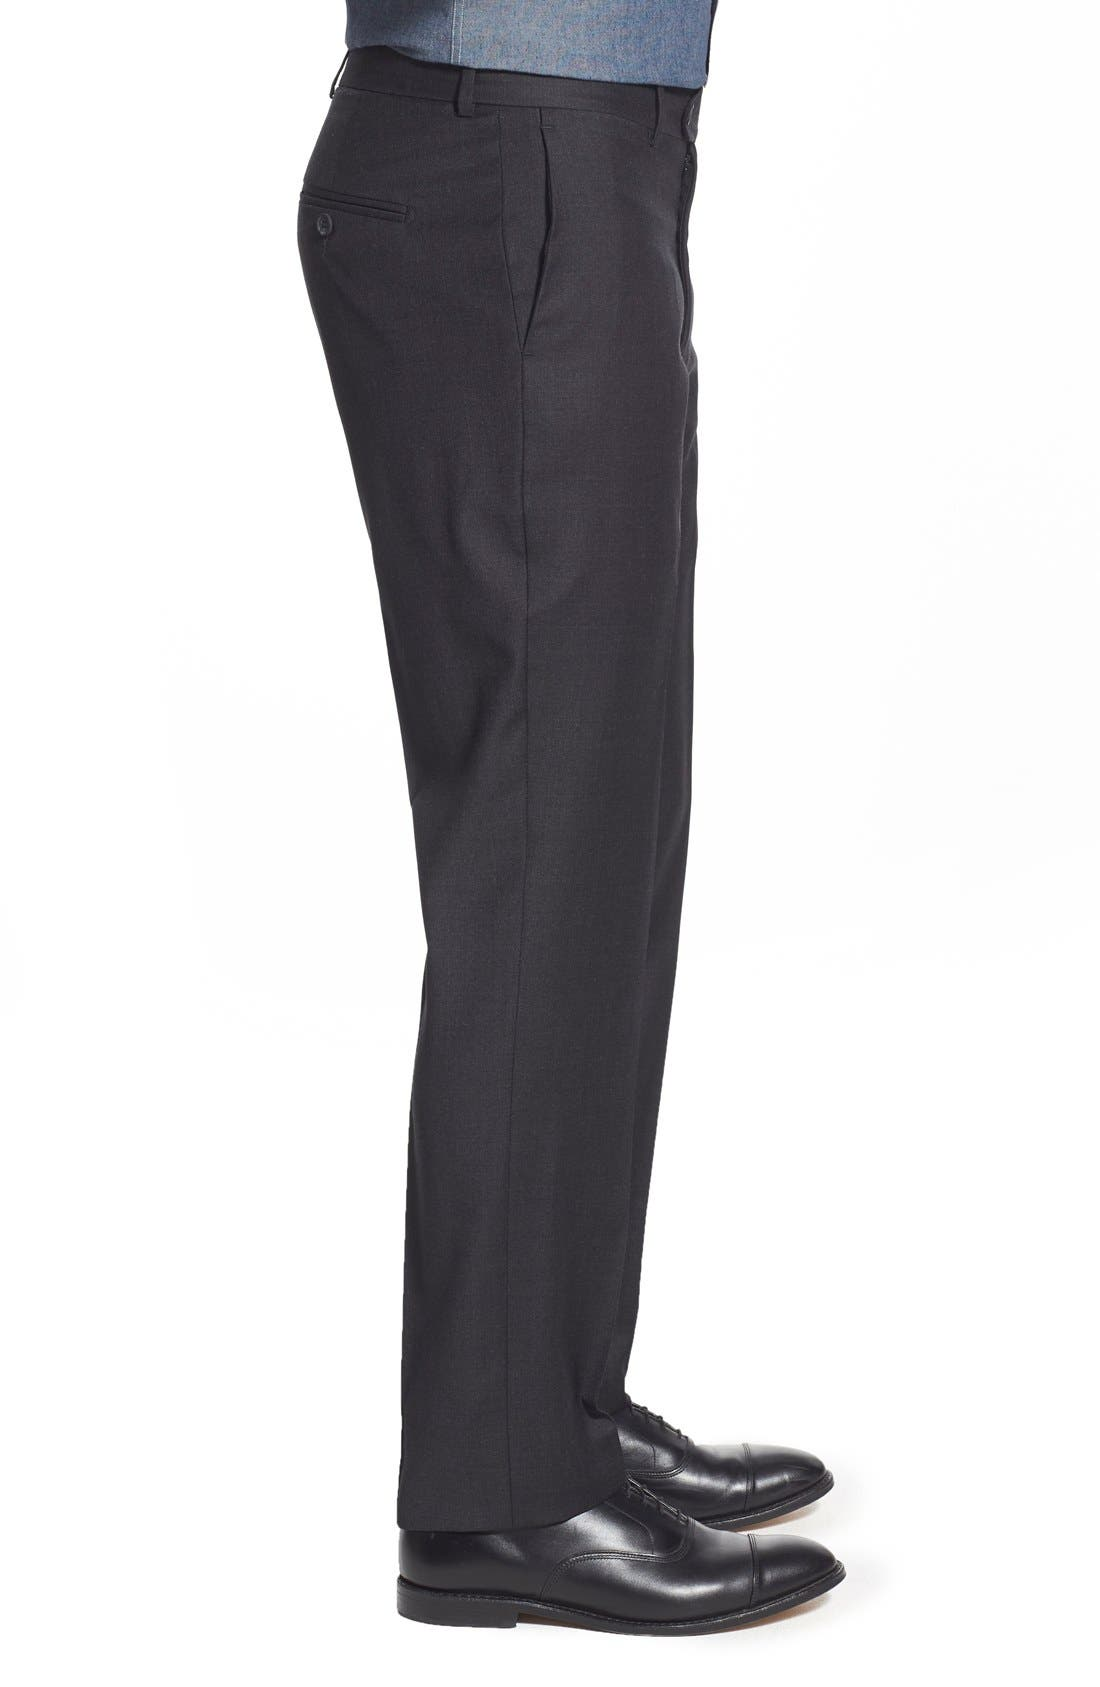 'Dagger' Flat Front Solid Wool Trousers,                             Alternate thumbnail 4, color,                             020